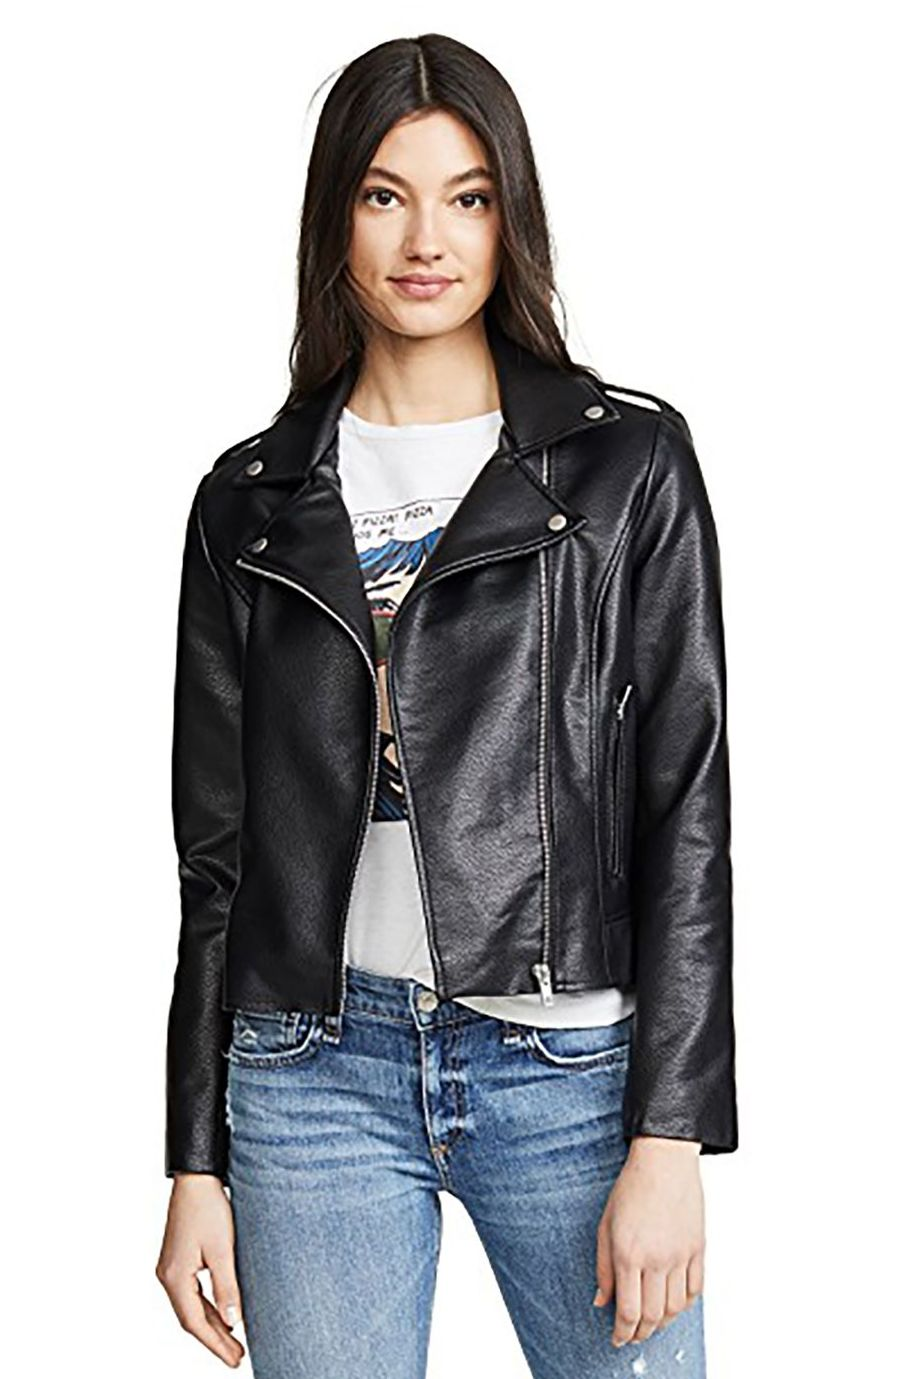 Leather Forever BB Dakota Shopbop $98.00 SHOP IT Leather jackets are year-round outerwear, and never go out of style . BB Dakota is notorious for its soft, affordable faux jackets like this one that looks way more expensive than it is.